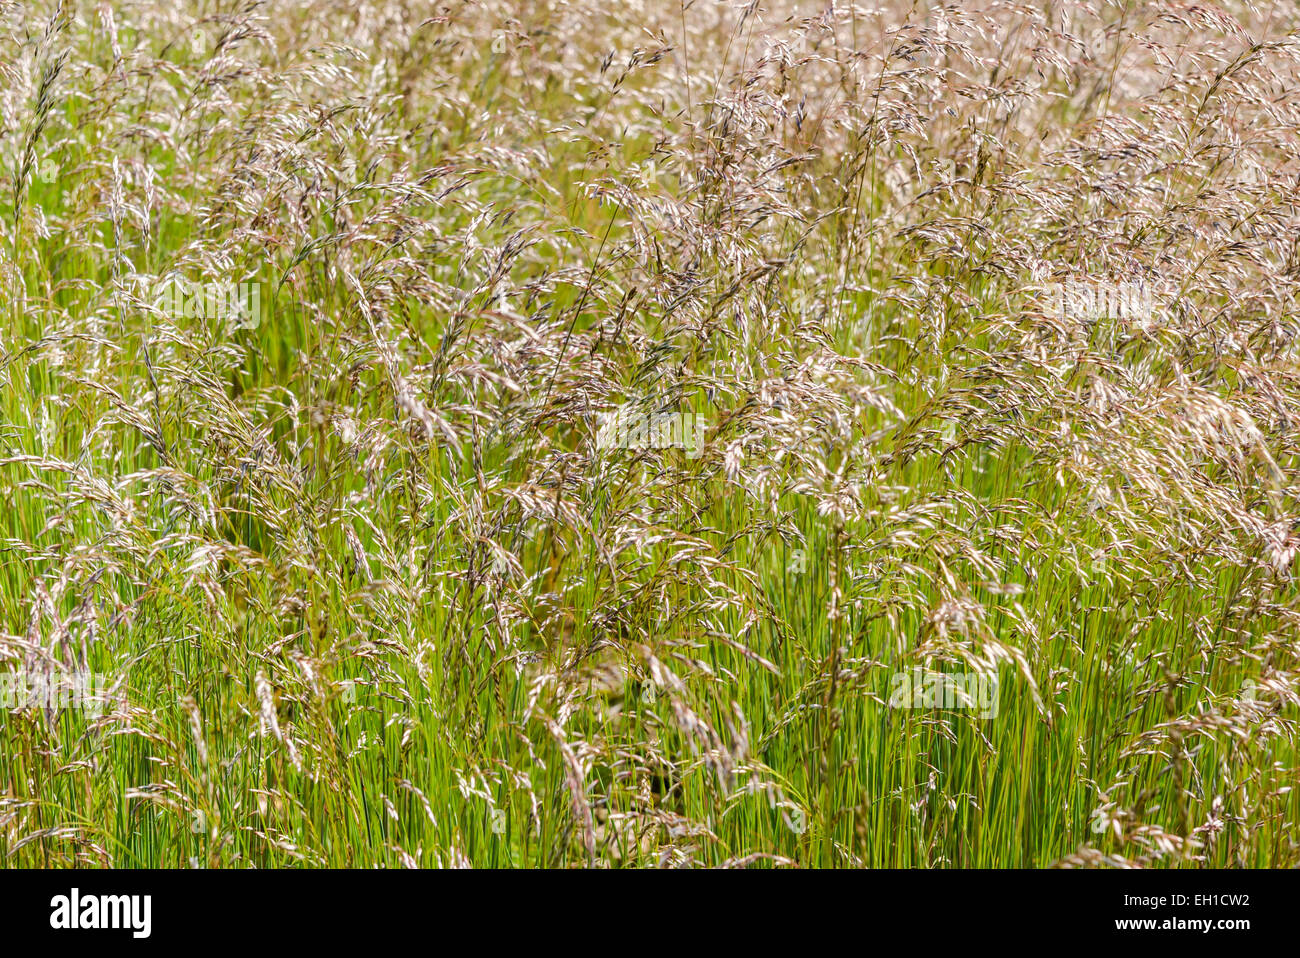 Green and brown long grass with ears in the wind. - Stock Image